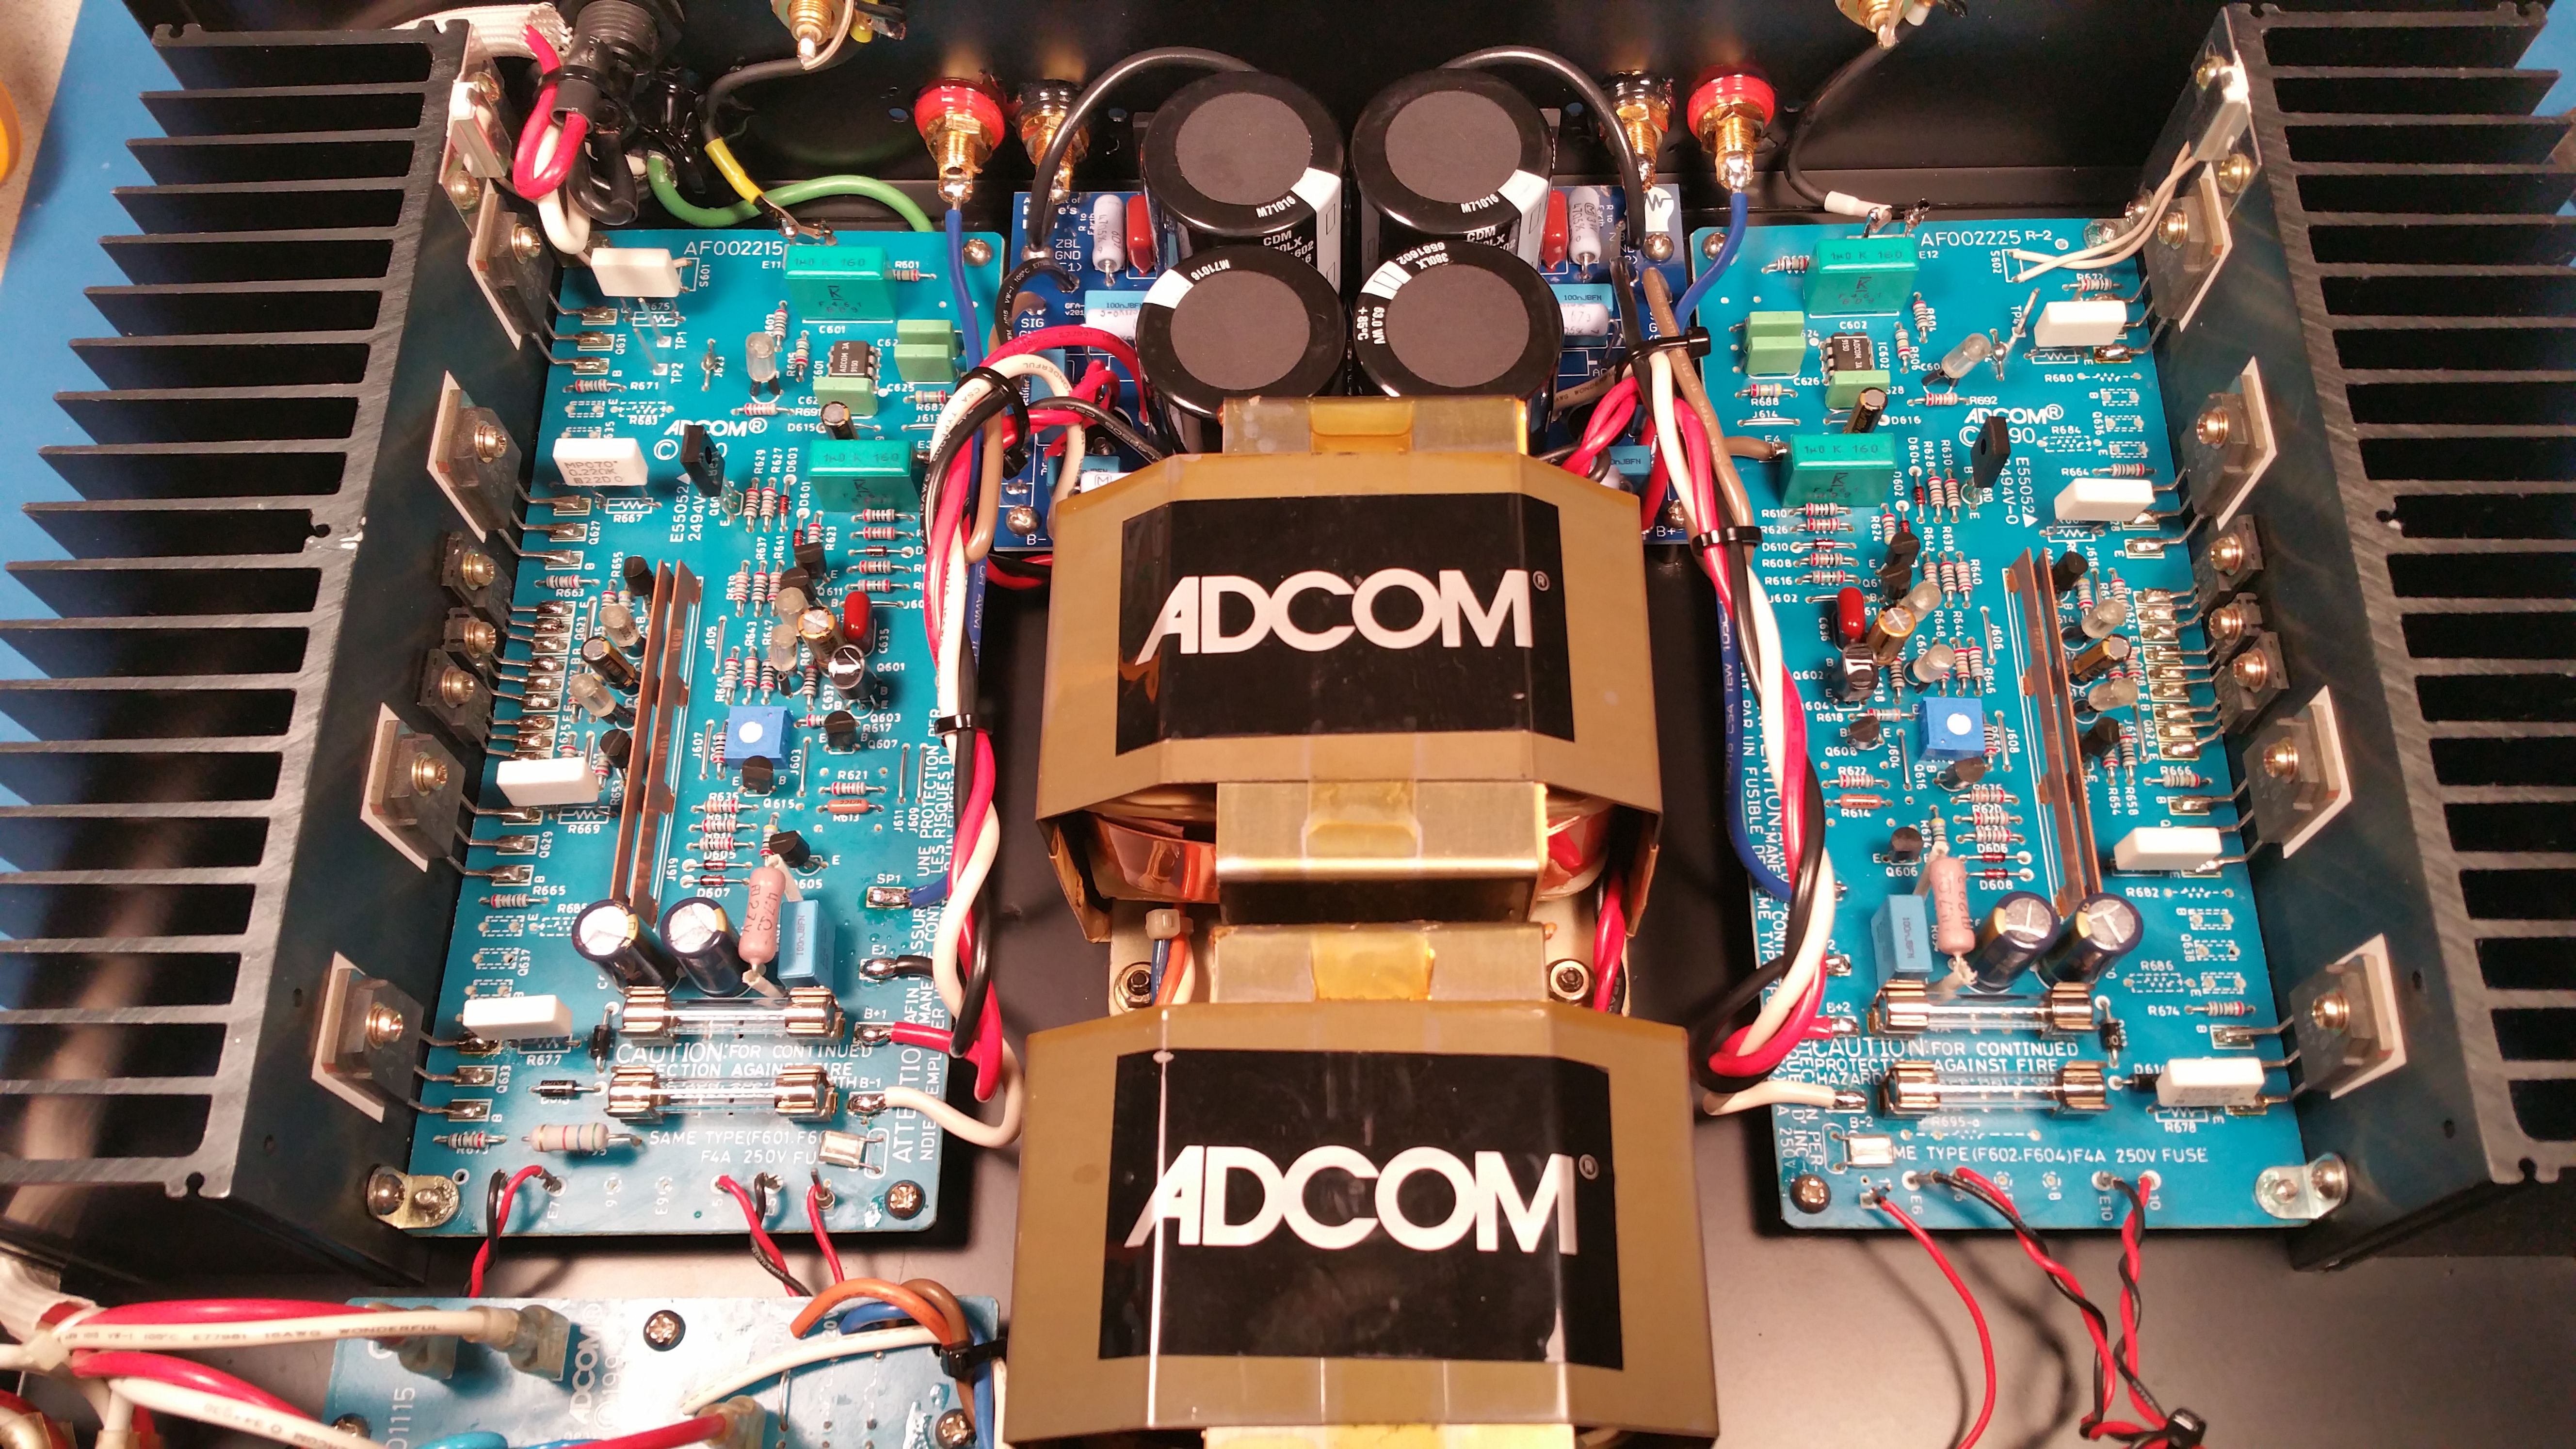 Classic Adcom Service Repair And Restoration Madison Wi Ensil Electronic Circuit Board Electronics Audiophile Upgrade Packages For The Gfa 535 545 555 Feature Newly Designed Power Supply Boards With Many Improvements Over Stock